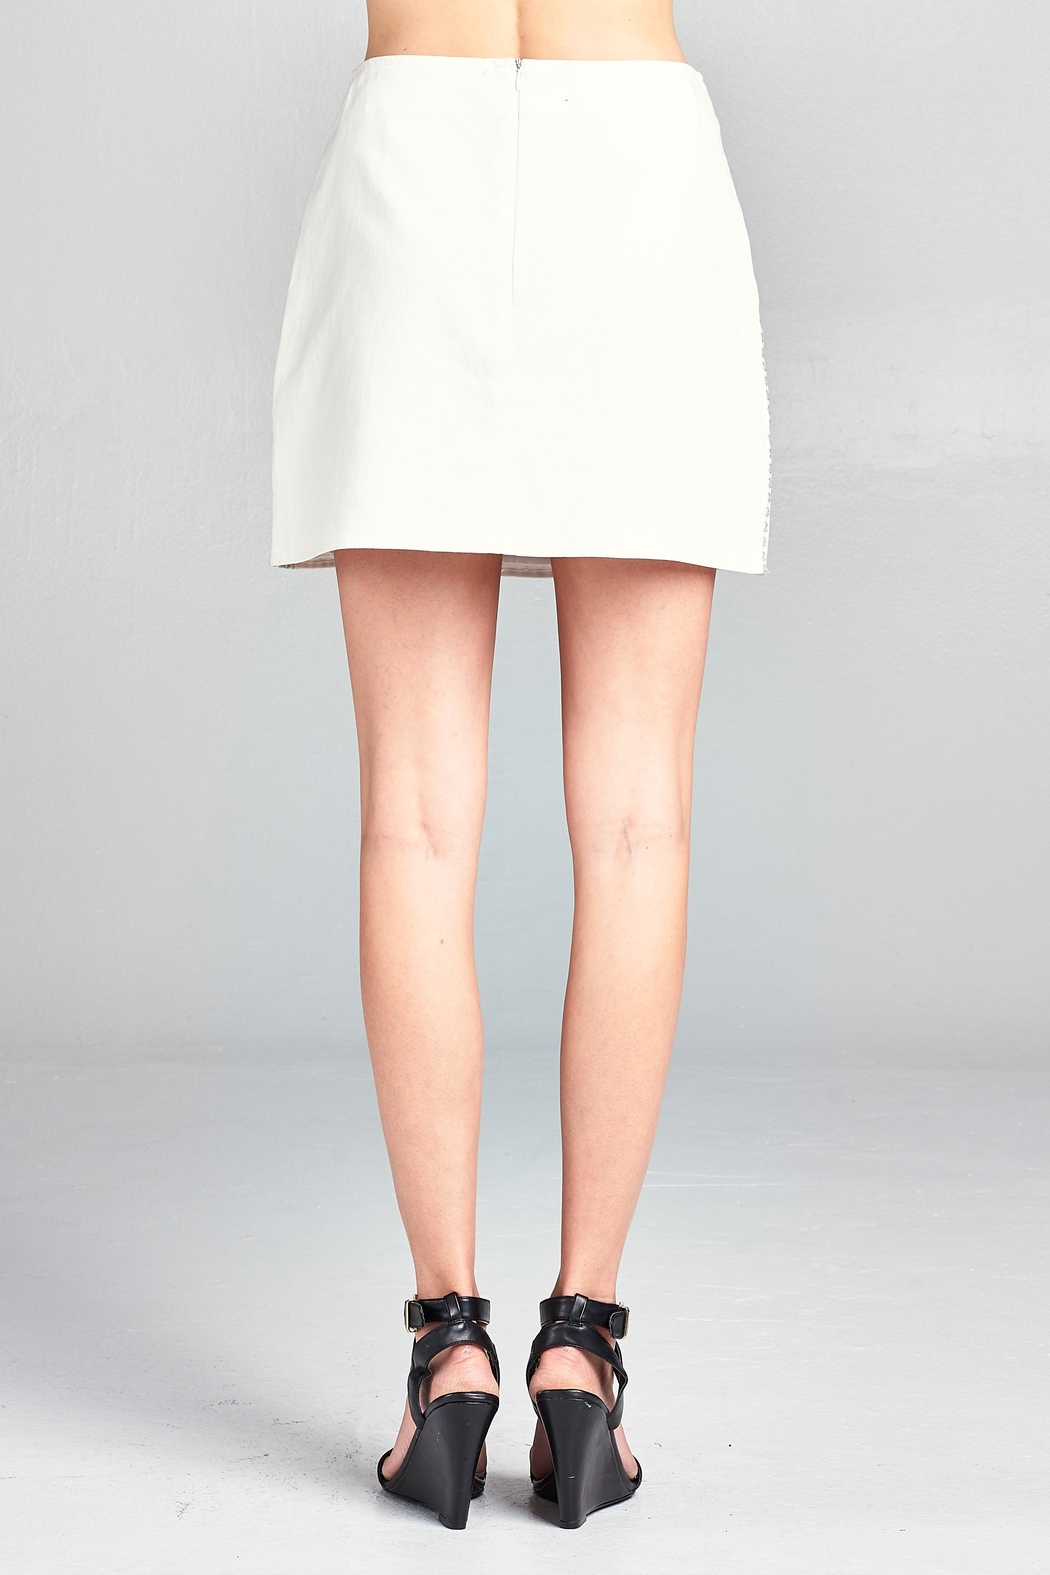 Velzera Floral Embroidered Mini-Skirt - Side Cropped Image